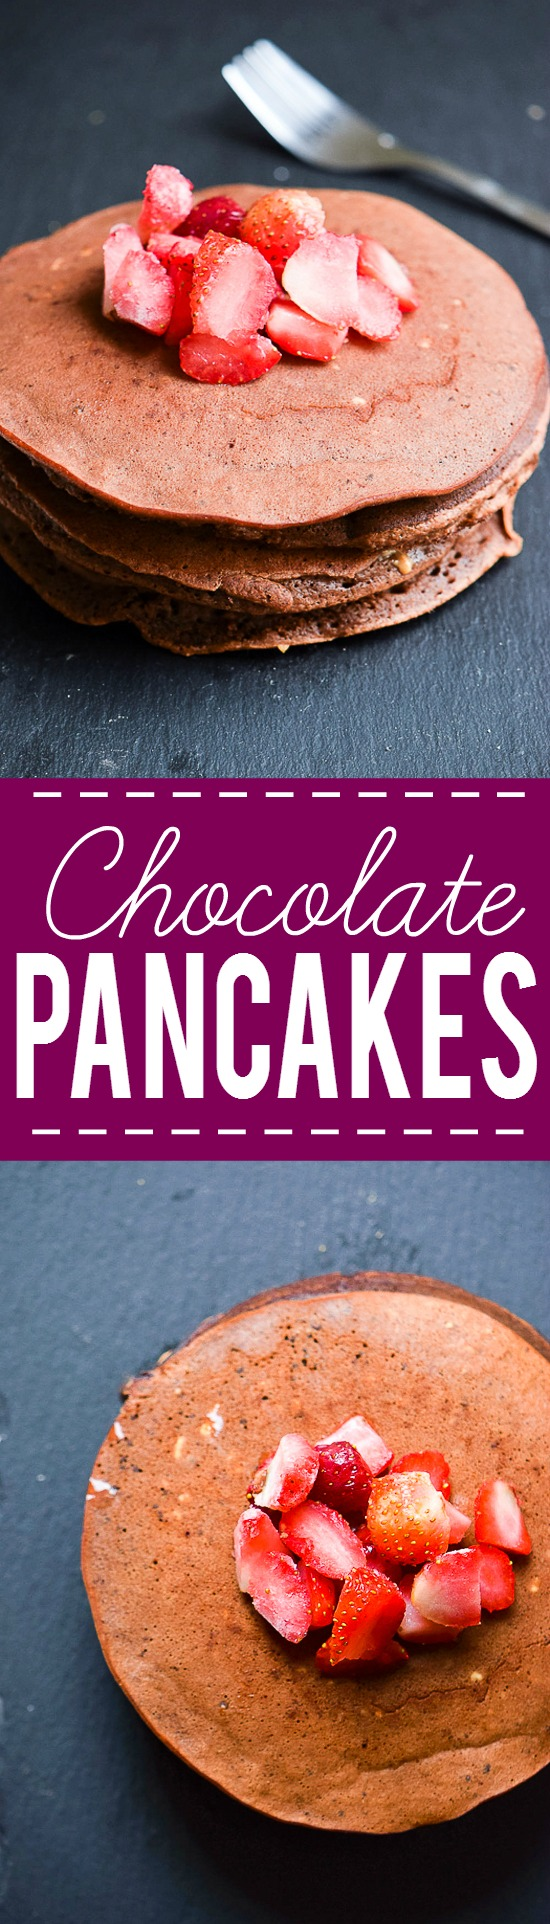 Chocolate Pancakes Recipe - A decadent way to start the day, these Chocolate Pancakes will add a sweet note to your morning.  Top them with berries, whipped cream, or powdered sugar! Amazing for a delicious, decadent, quick and easy breakfast recipe!